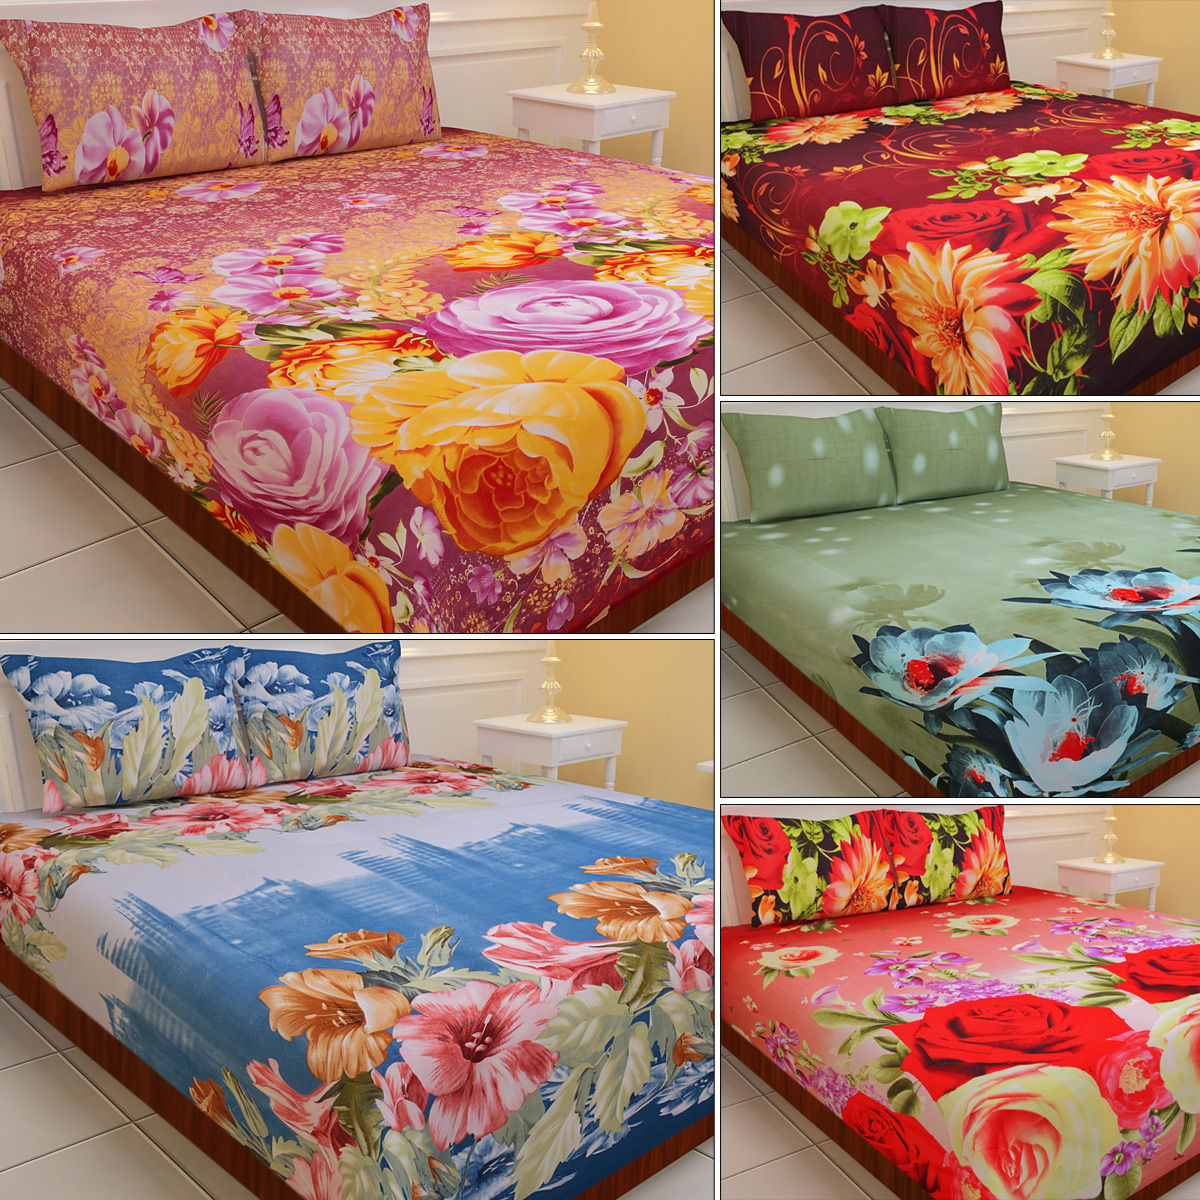 Extra Soft Glamorous 5 Double Bed Sheets with 3D Prints